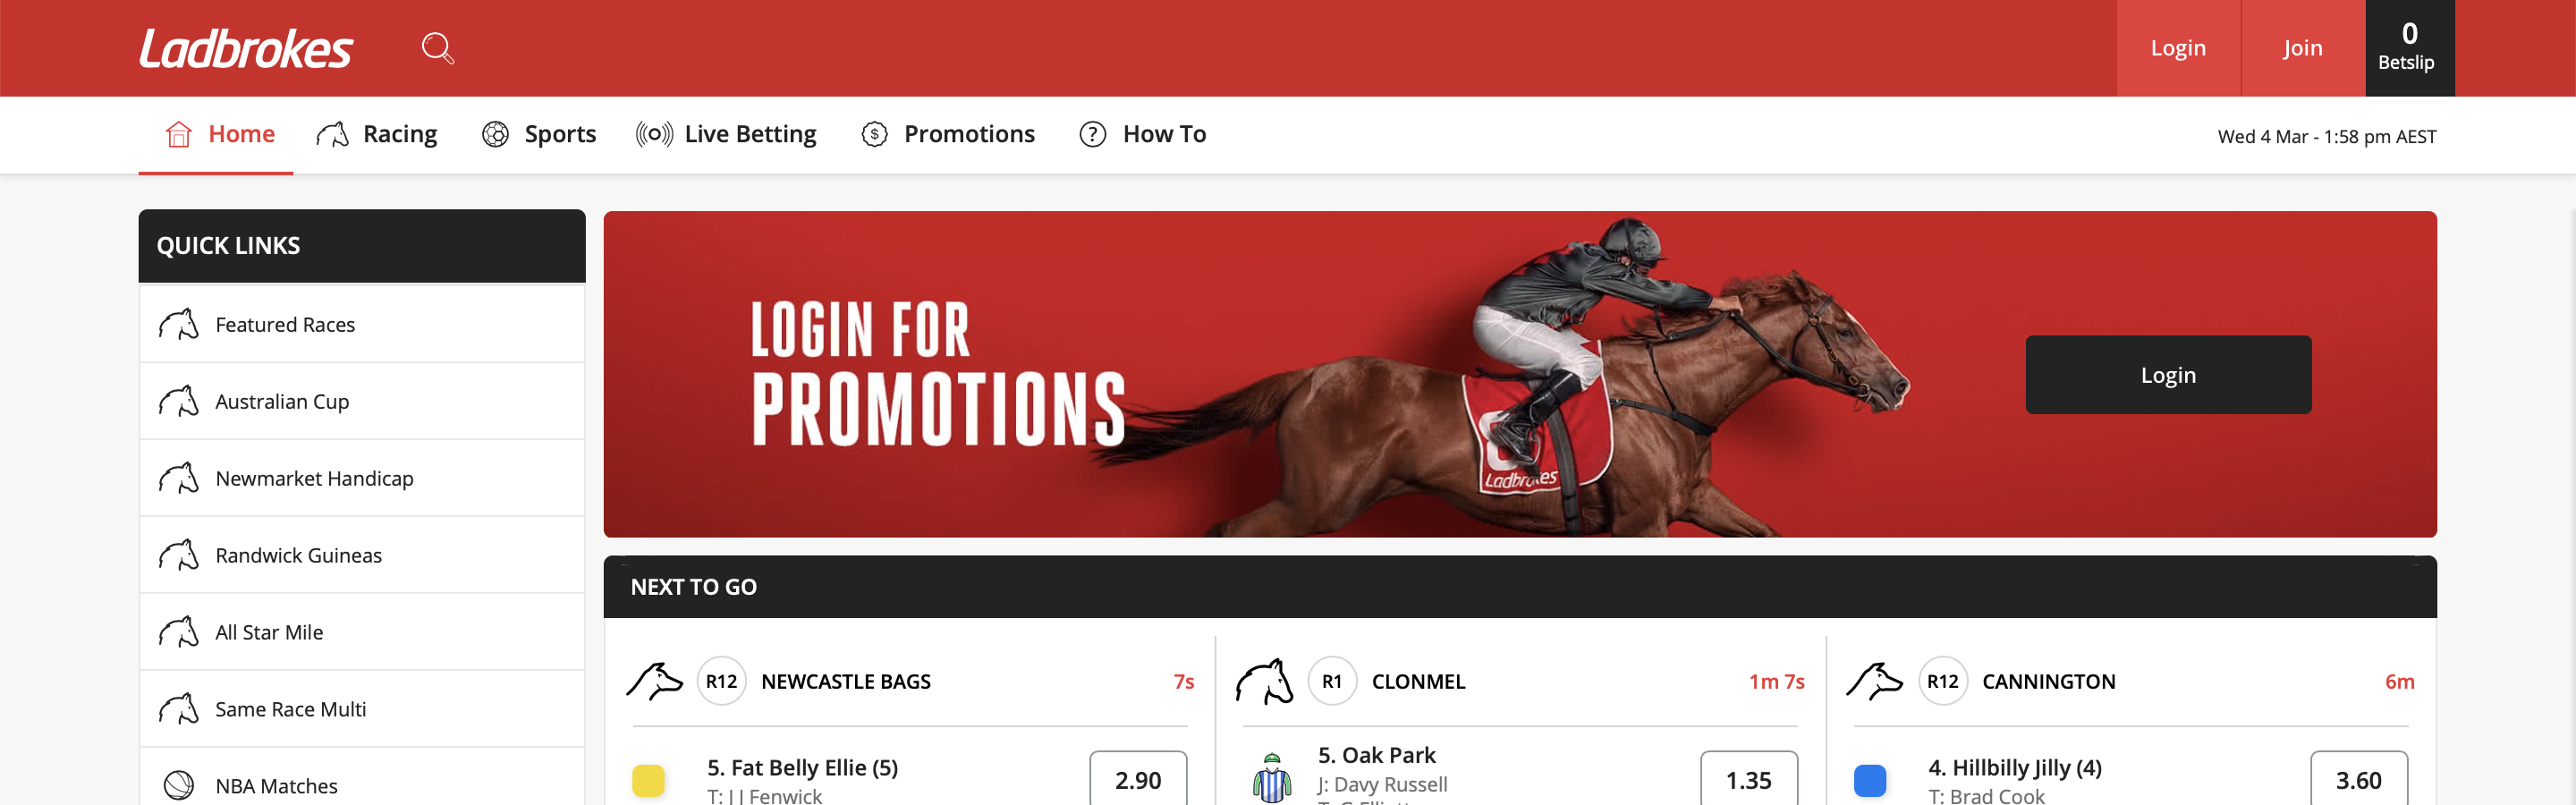 Ladbrokes Homepage Interface